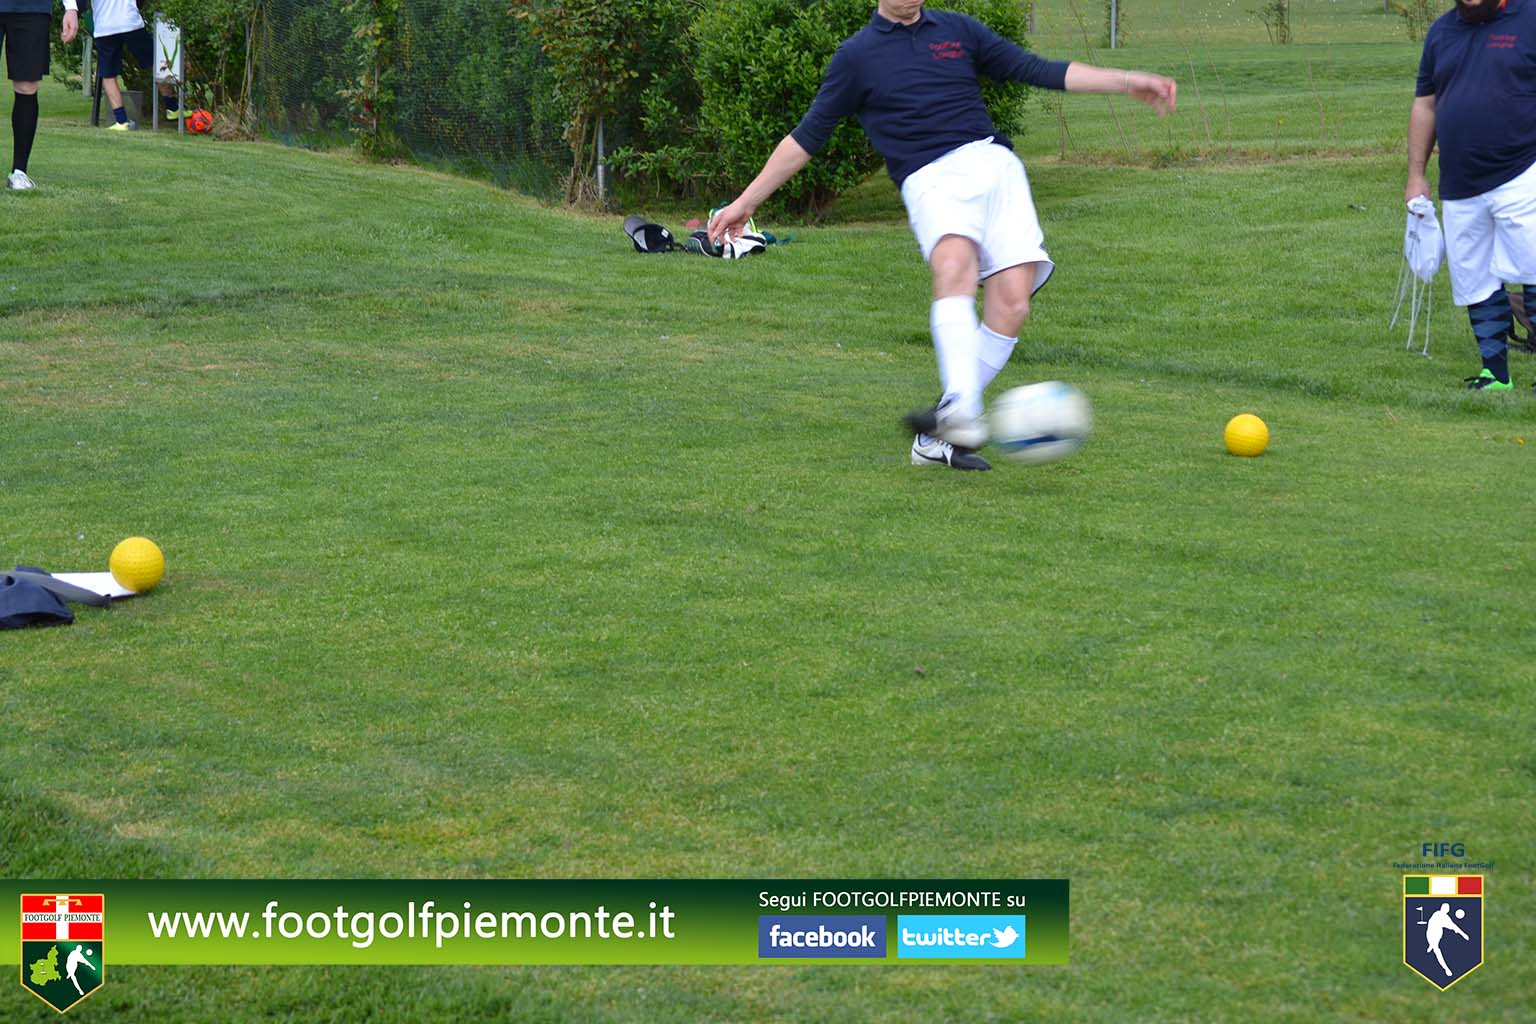 FOTO 9 Regions' Cup Footgolf Piemonte 2016 Golf Città di Asti (At) 30apr16-76